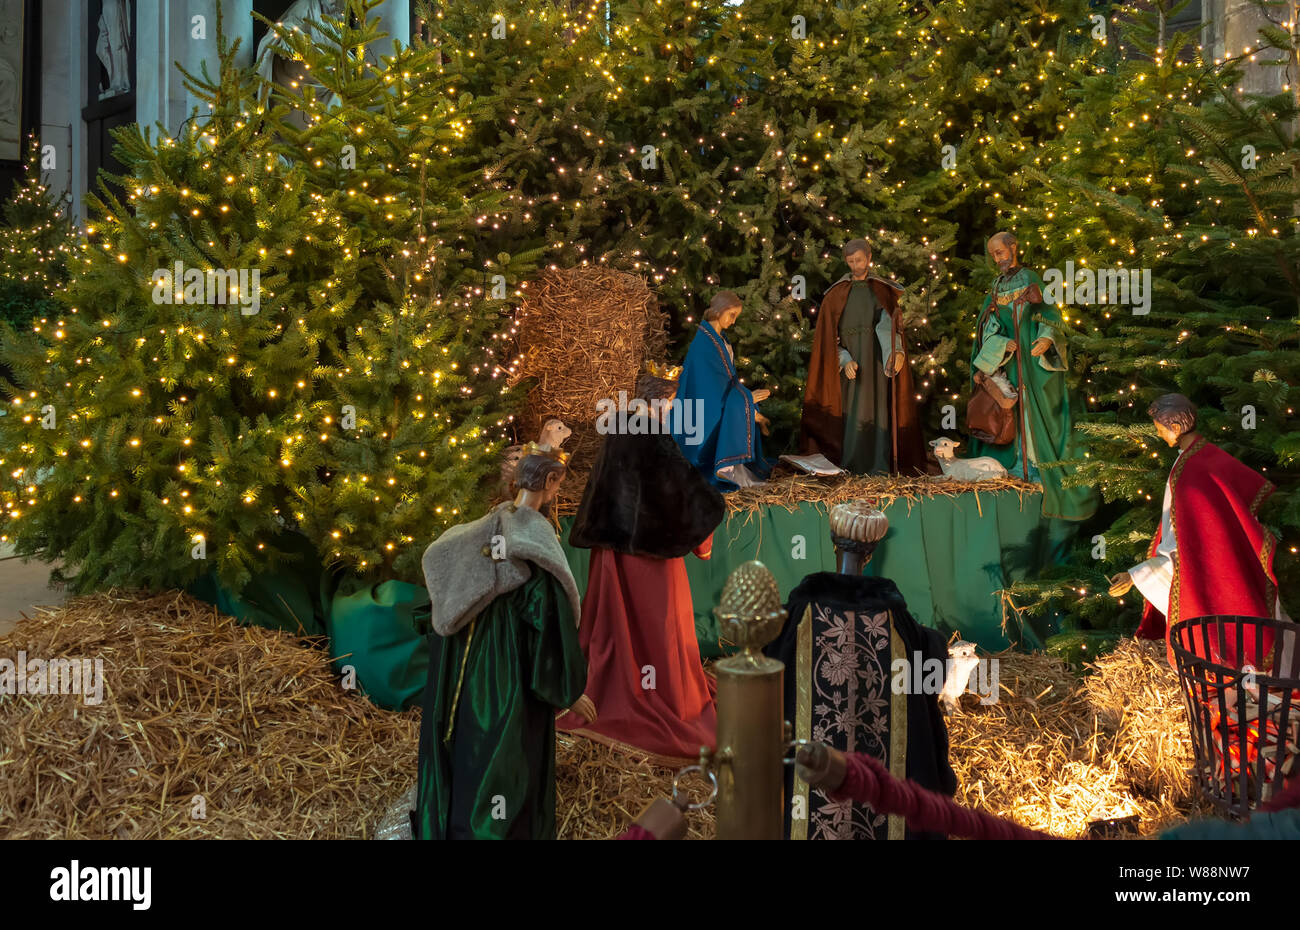 Ghent, Belgium - December 16, 2018: Nativity scene exhibit figures representing the birth of Jesus at Christmas season in Saint Bavo Cathedral. Stock Photo